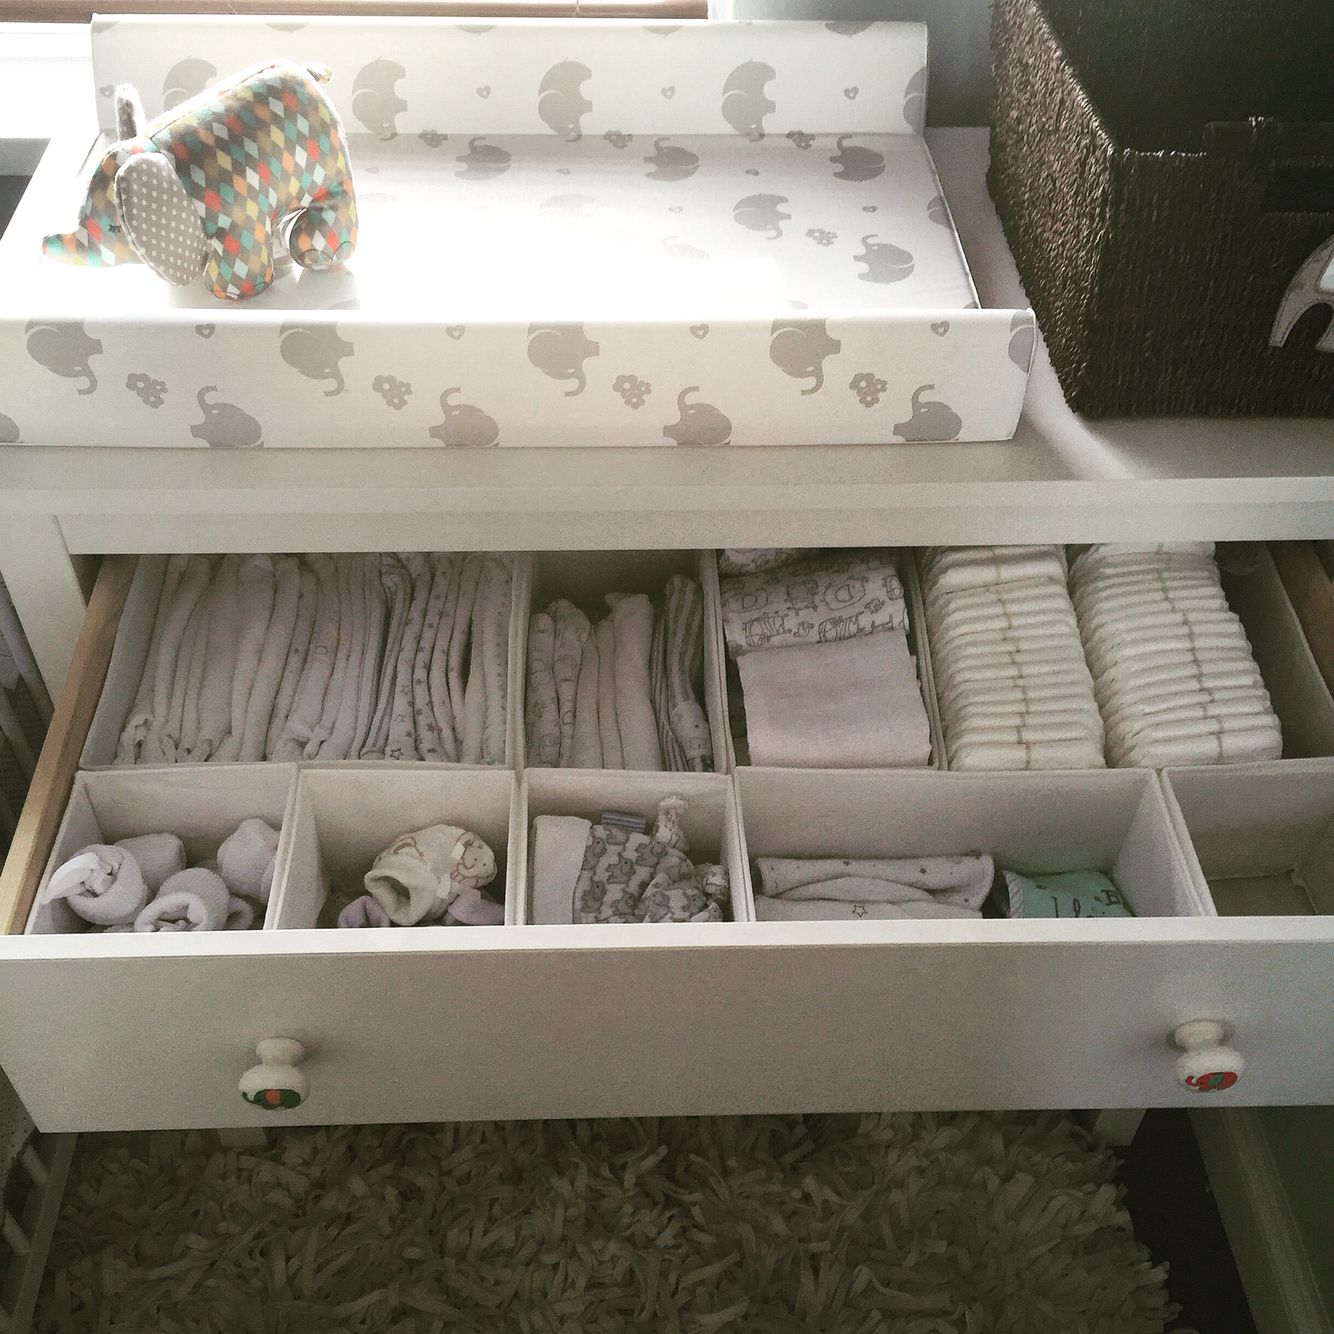 ikea skubb boxes perfect for organising babies bits andu2026 get some malm under bed drawers u0026 use for baby stuff with dividers